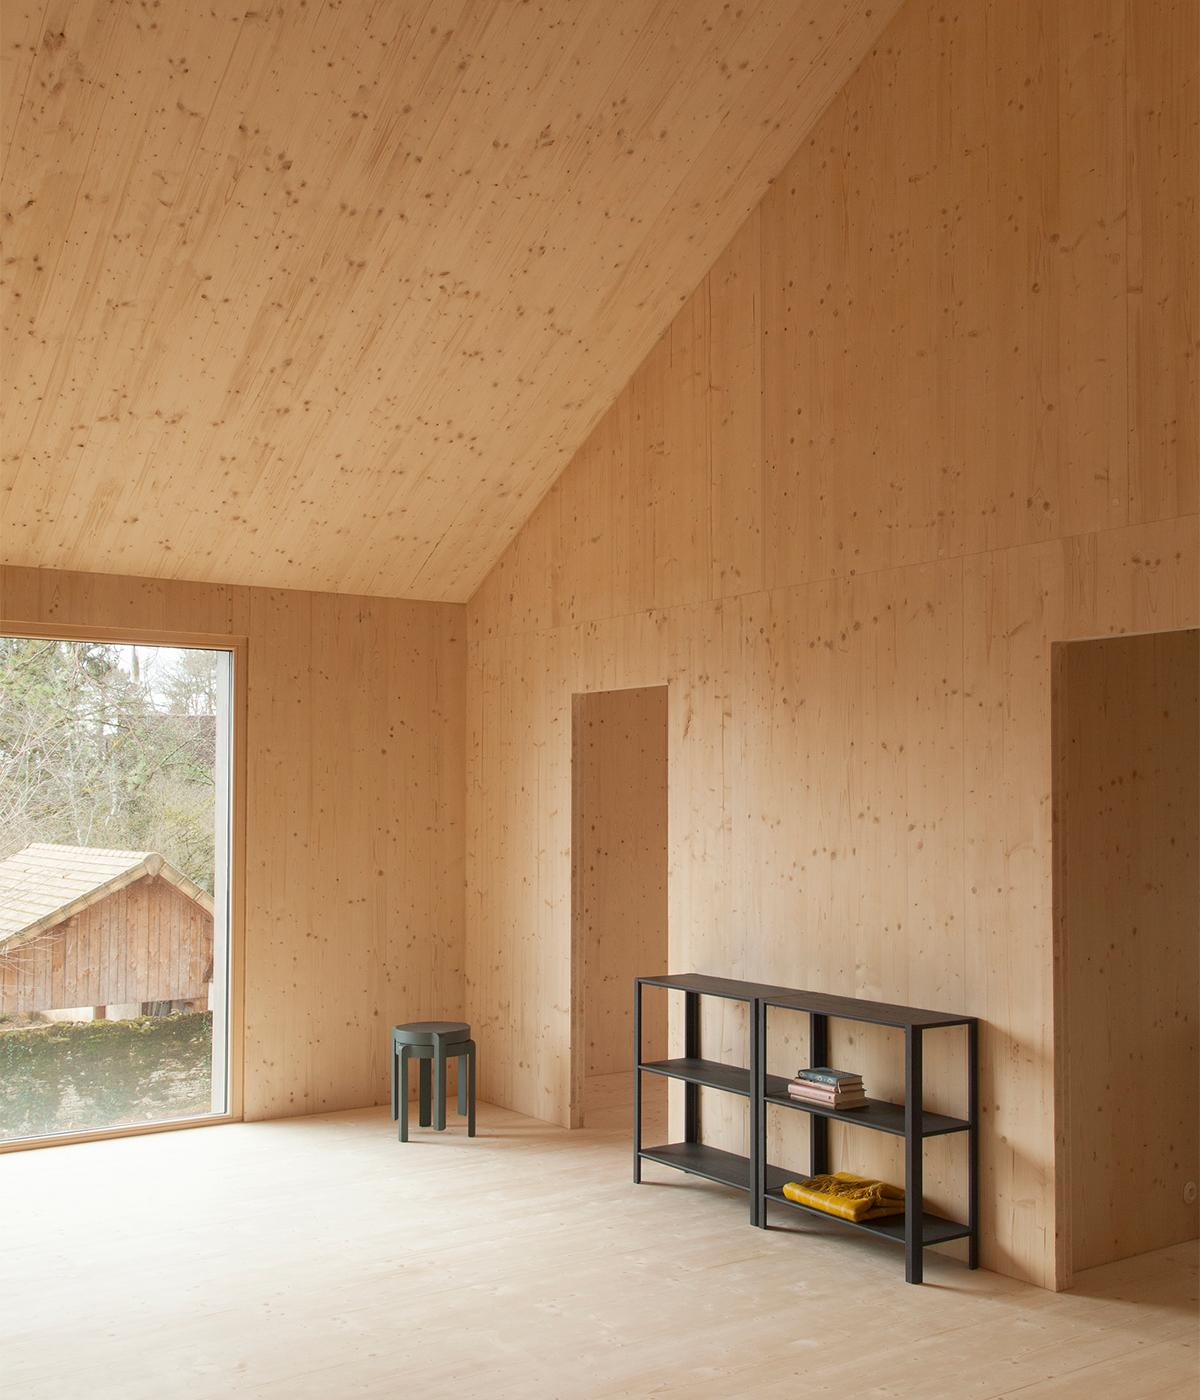 Home Design Möbel A Minimalist Sustainable Prefabricated Wood House In